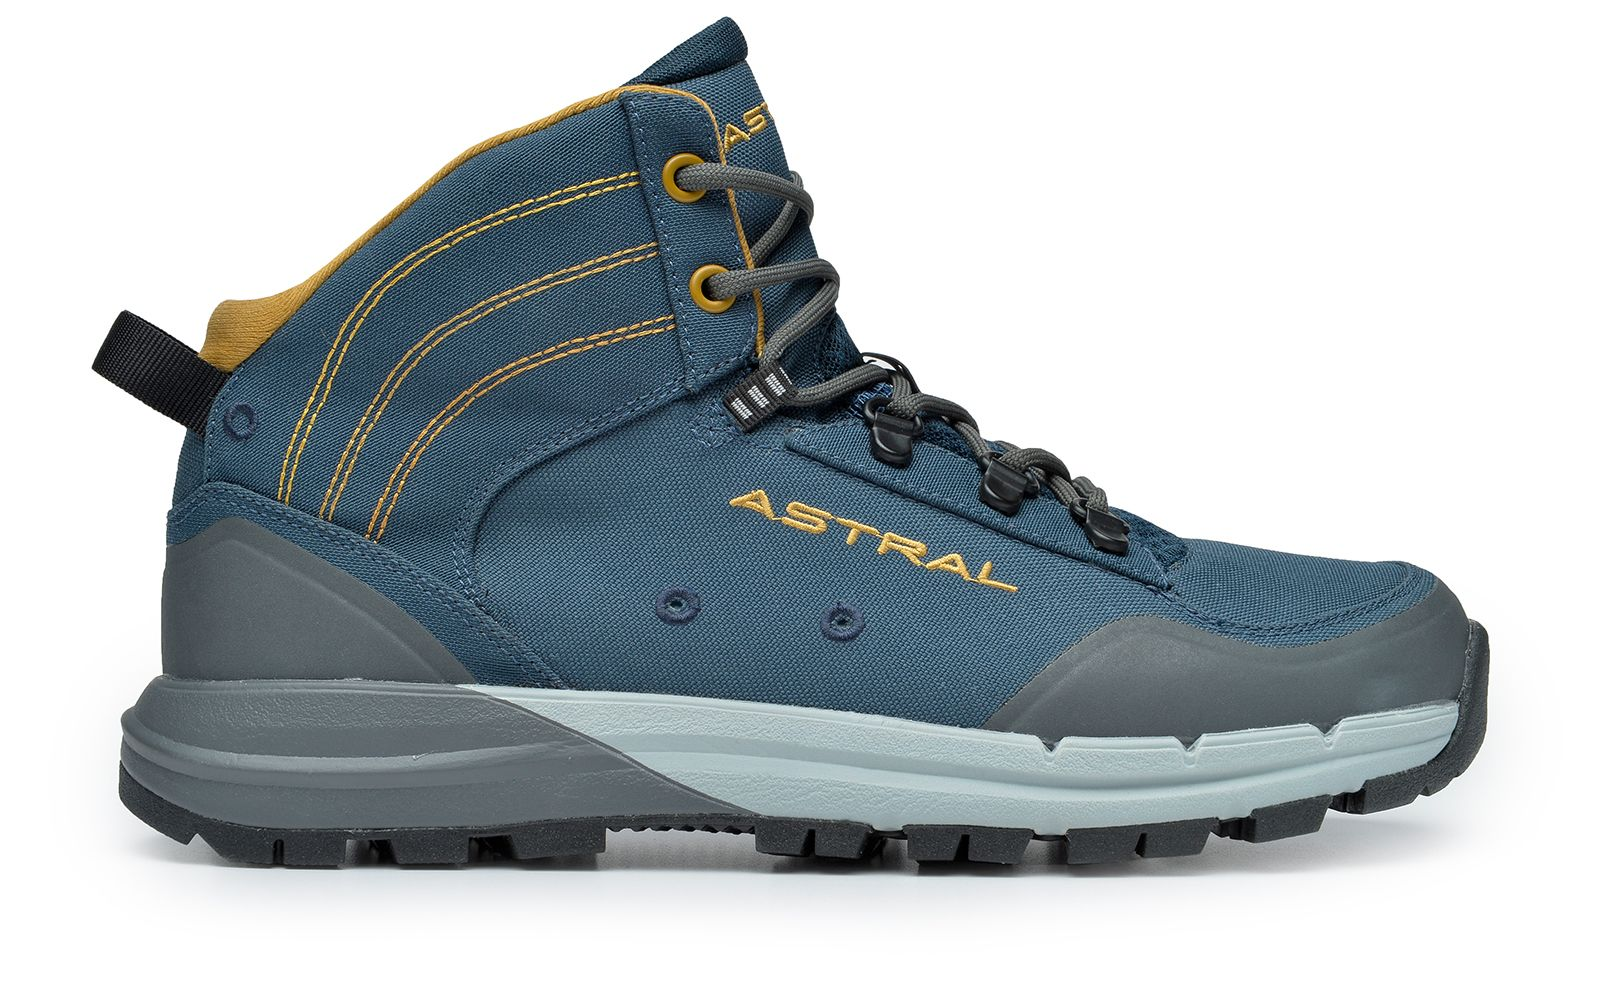 948bea7c319 TR1 Merge Men's Water Resistant Hiking Shoes | Astral | Non ...